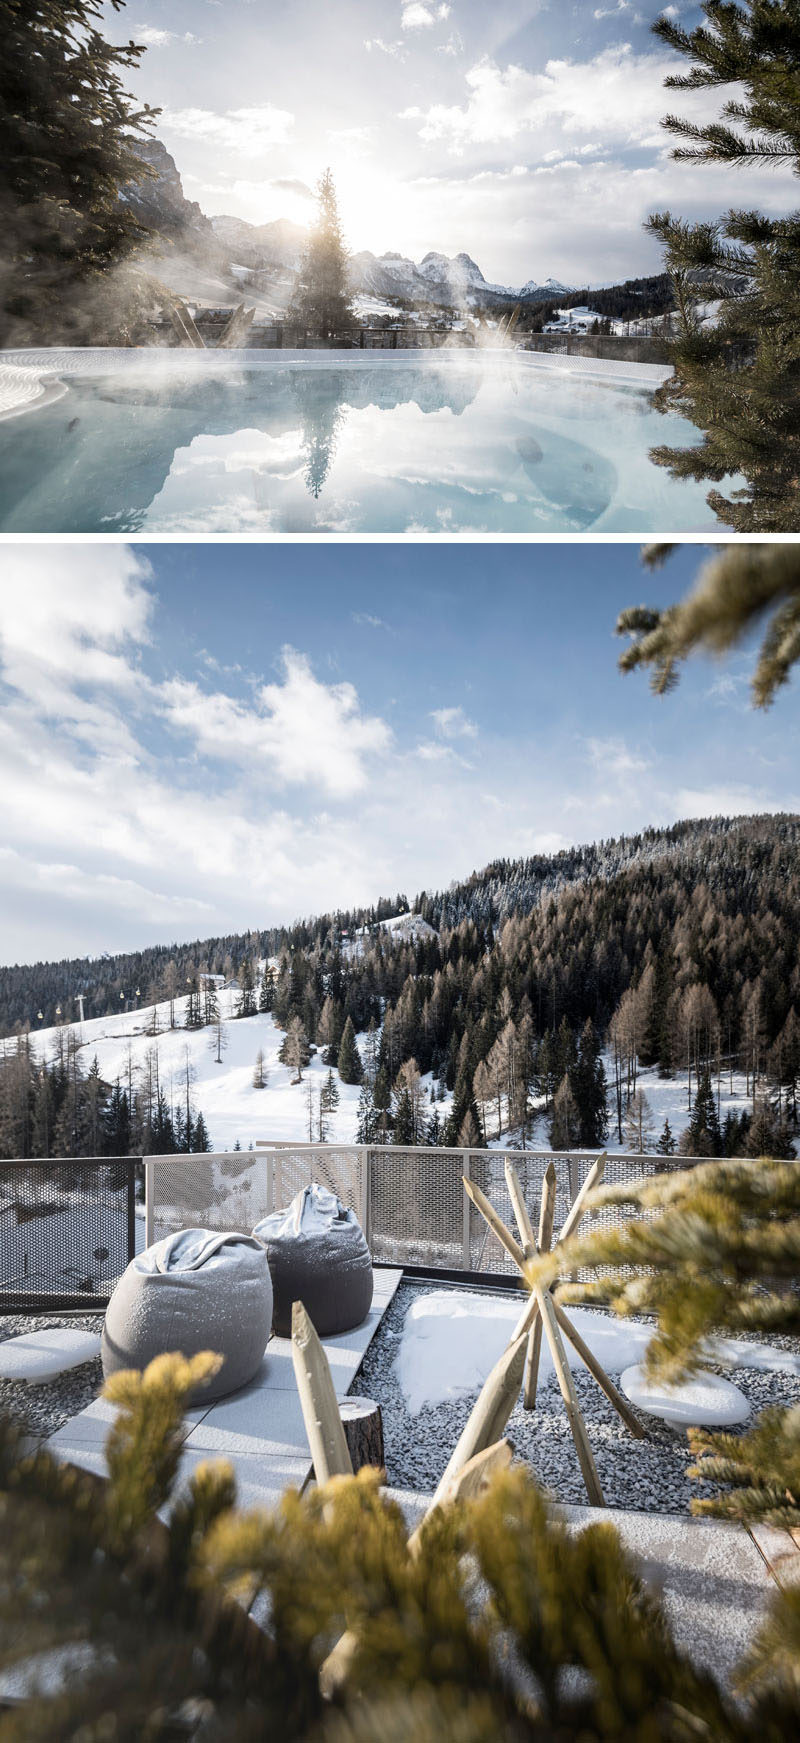 This modern hotel in Italy has a hot tub surrounded with small pine trees, creating the effect of being on the mountain top while still in the pool.